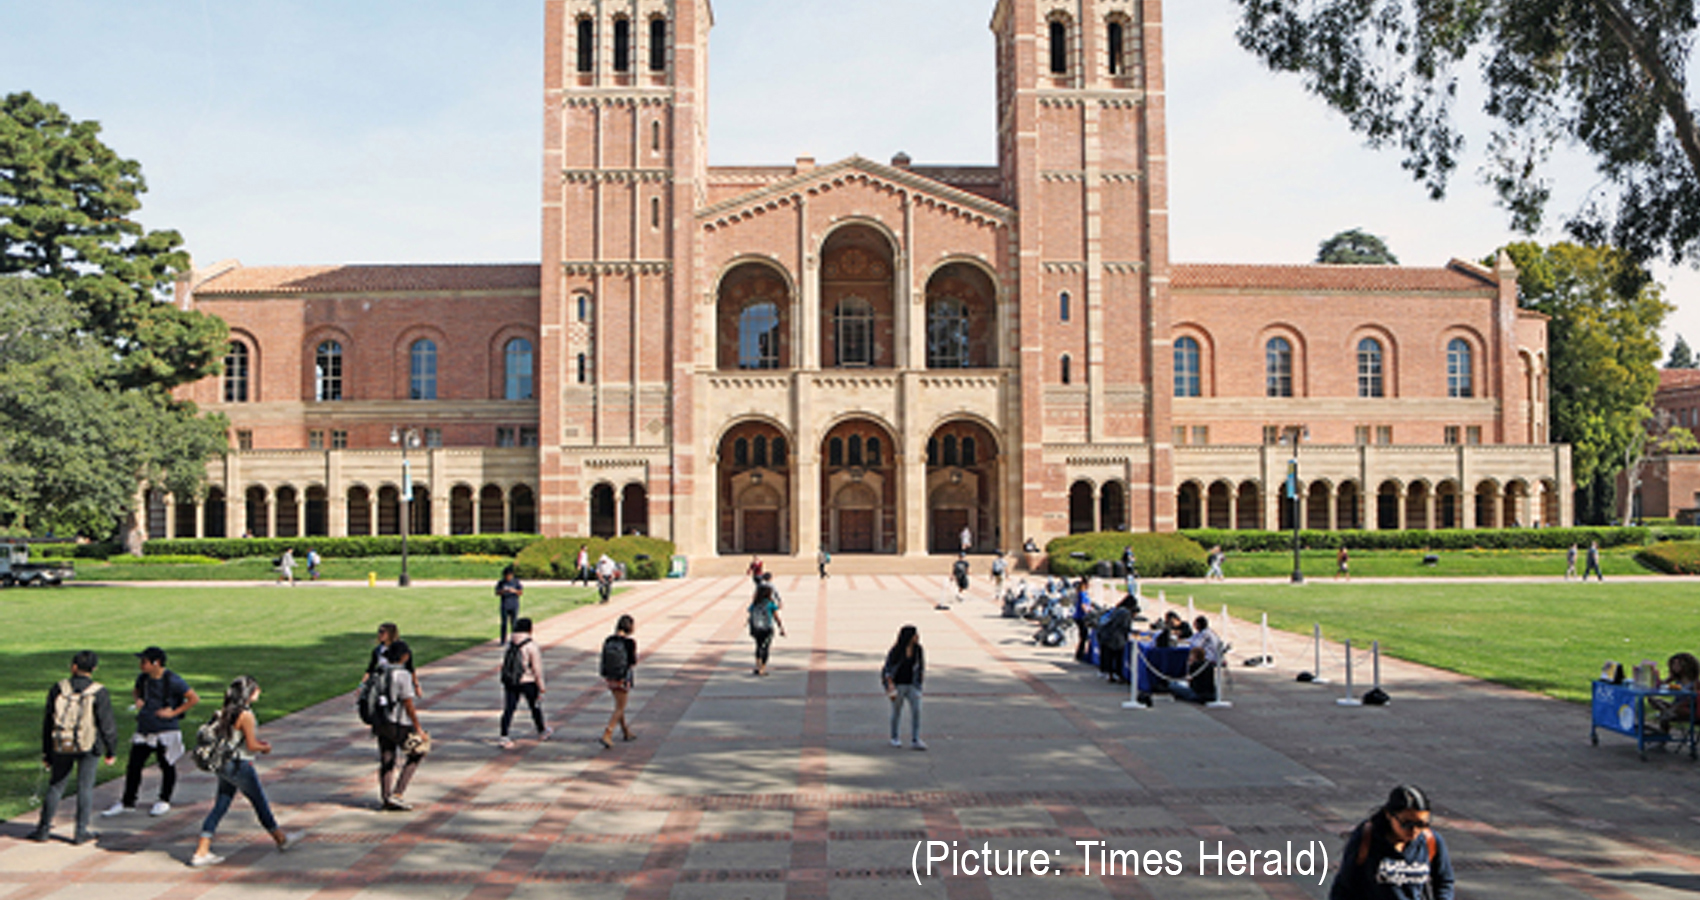 Applications Surge After Big-Name Colleges Halt SAT And ACT Testing Rules